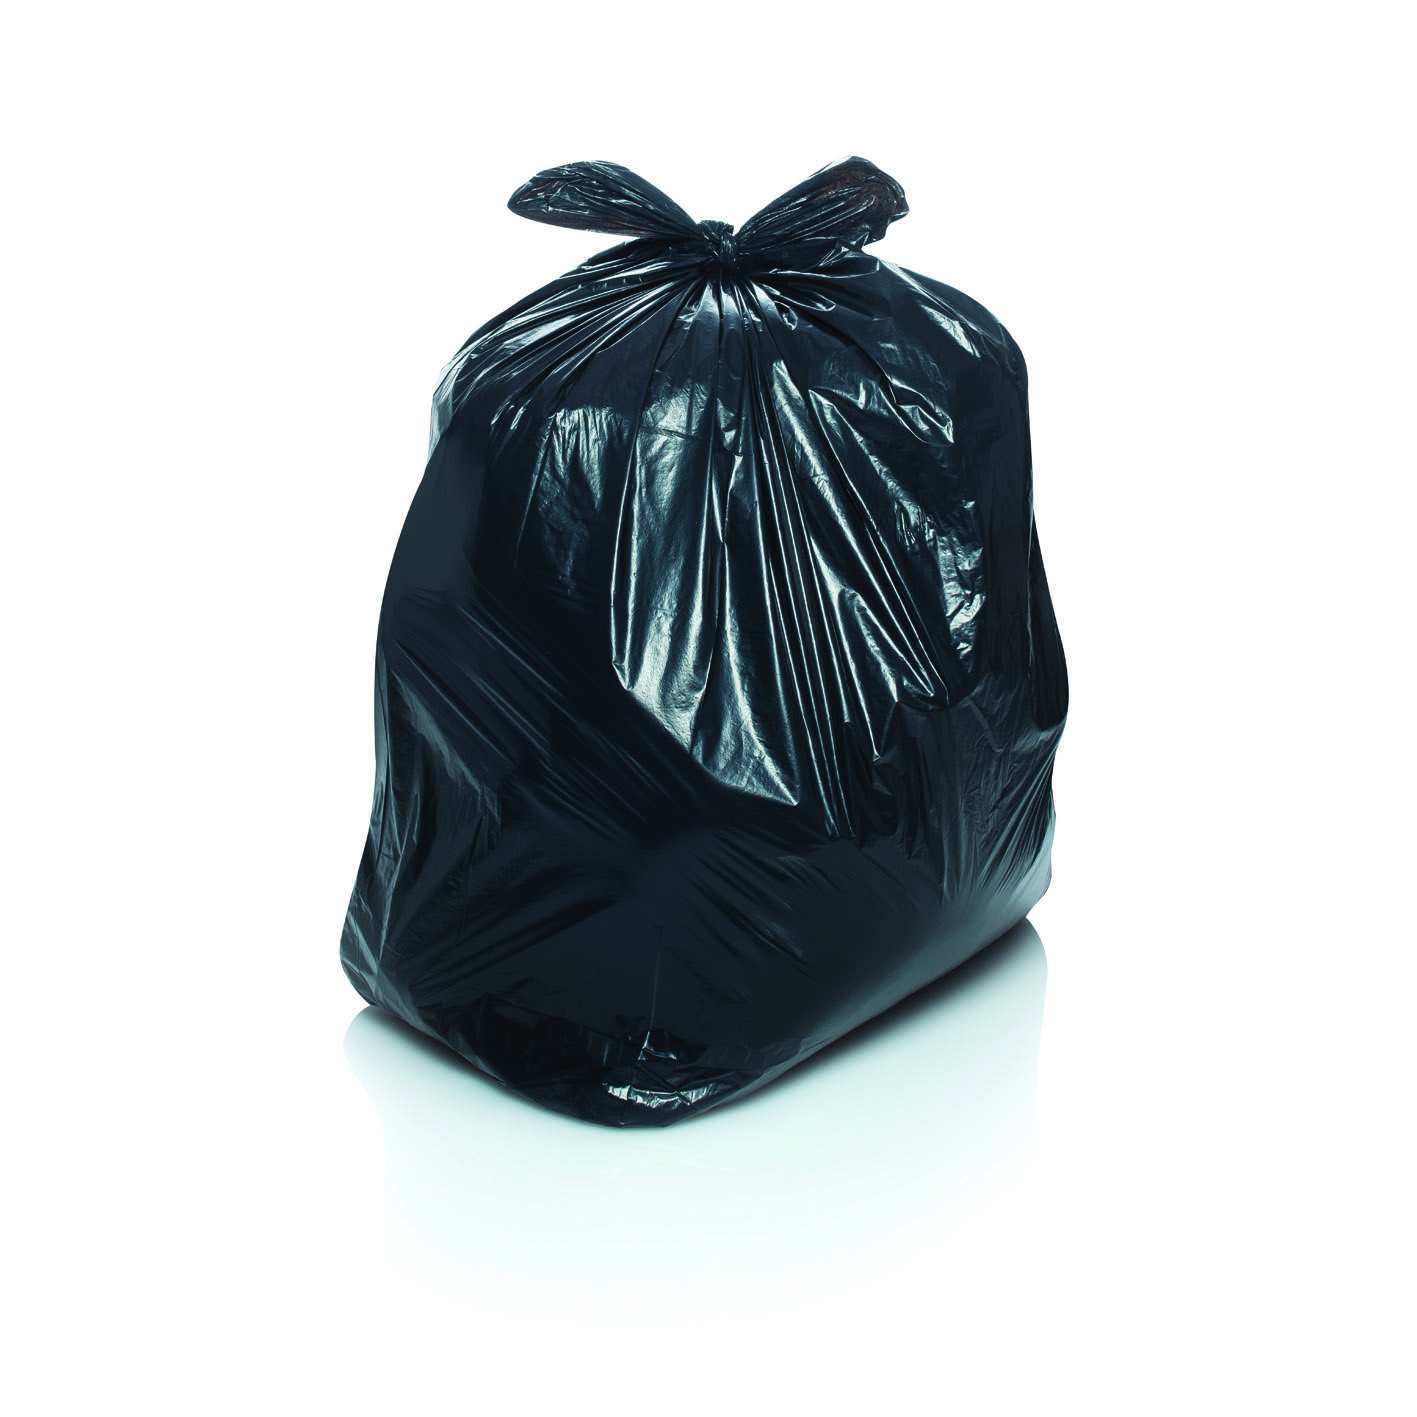 Black refuse sacks ideal for use in the office  school or home.